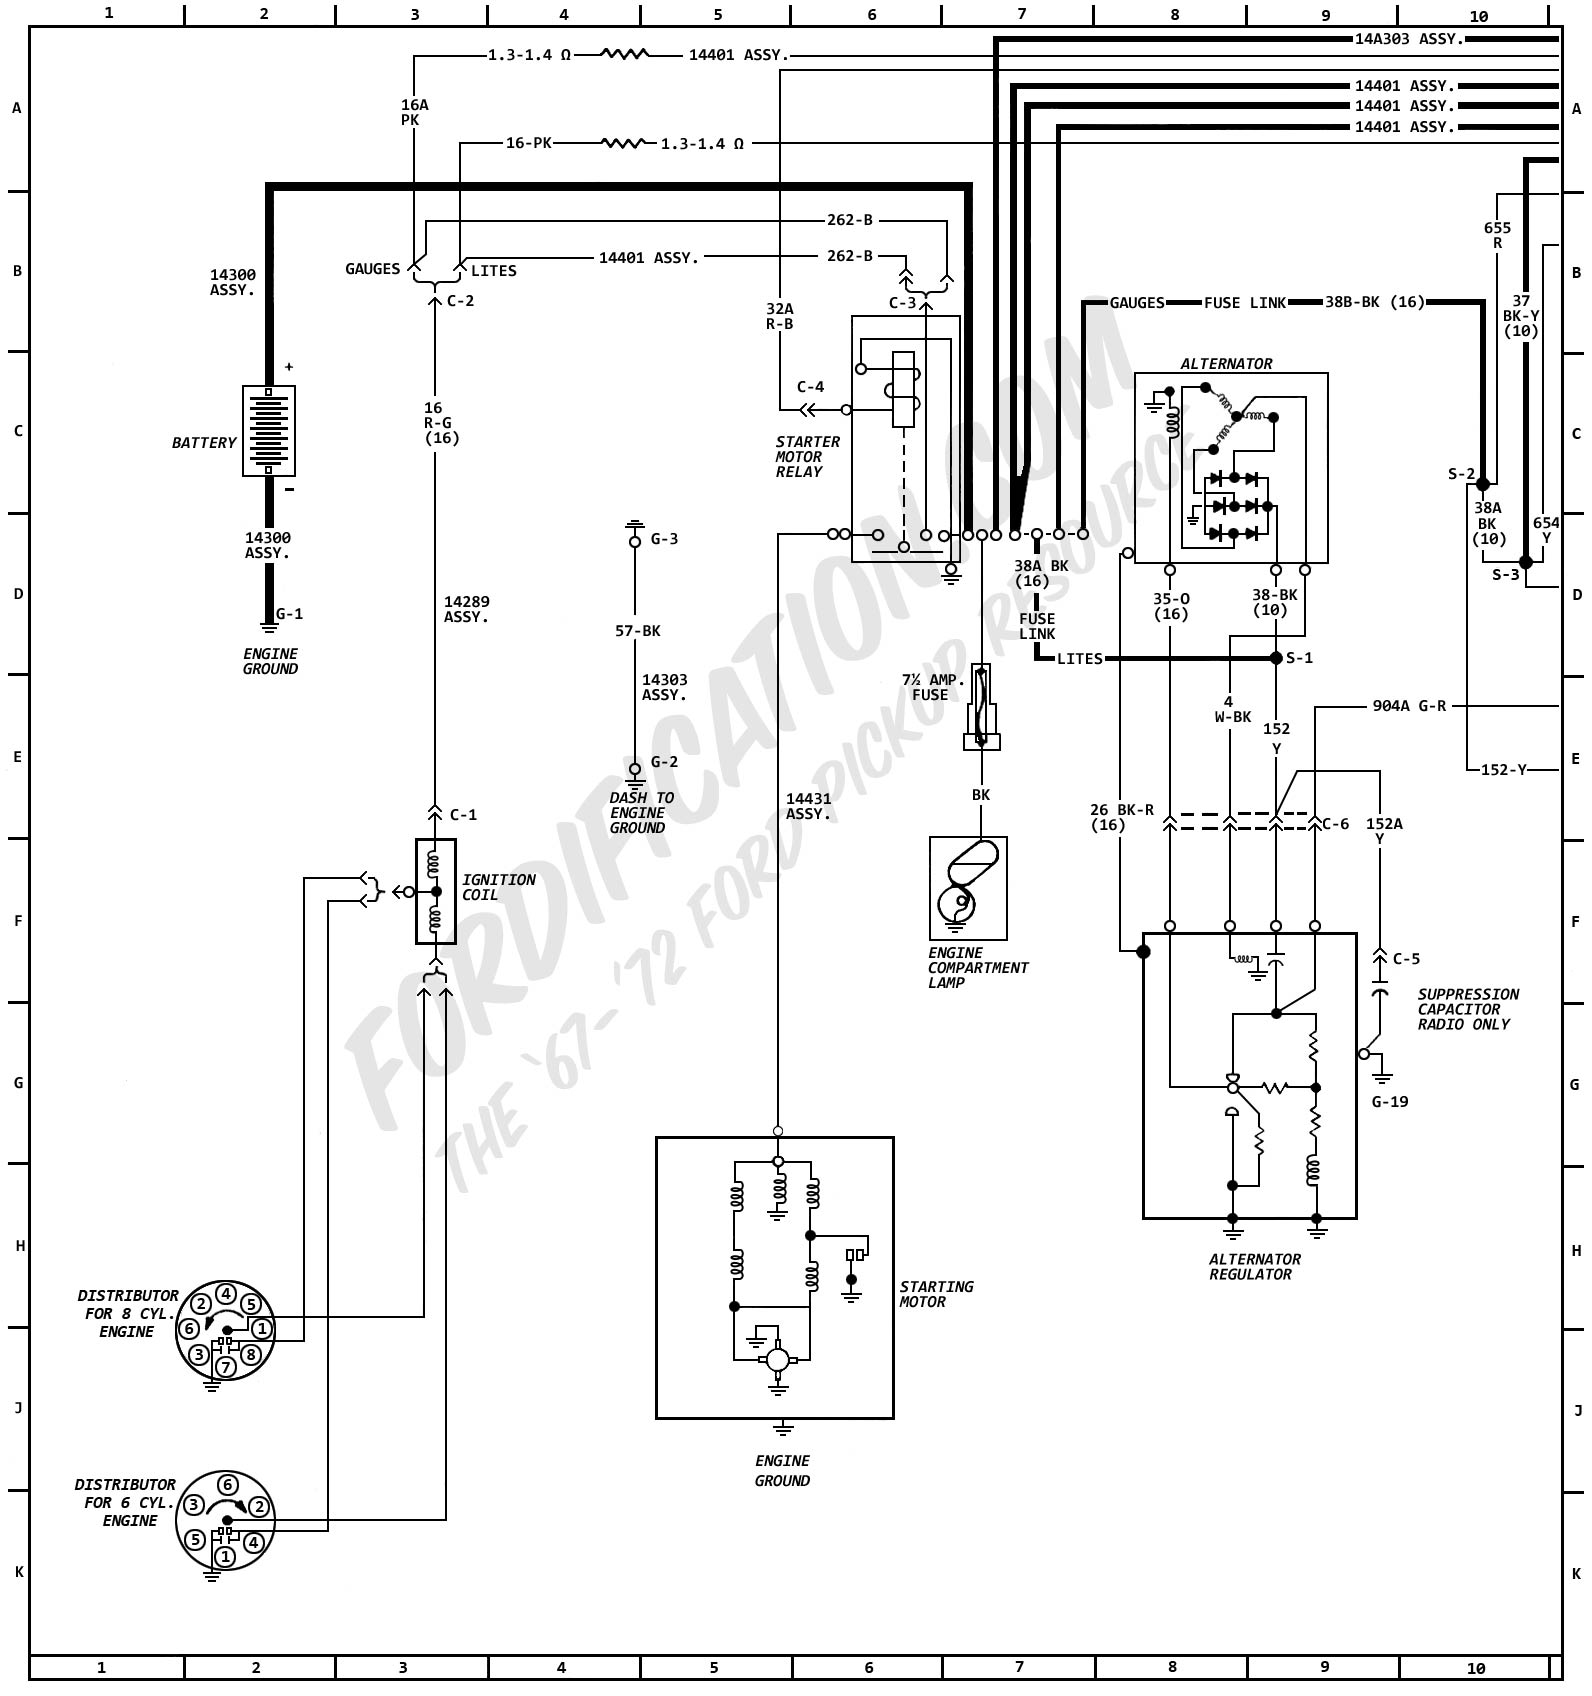 1972 Ford Truck Wiring Diagram Schemes 85 Chevy Elcamino Diagrams Fordification Com Electrical